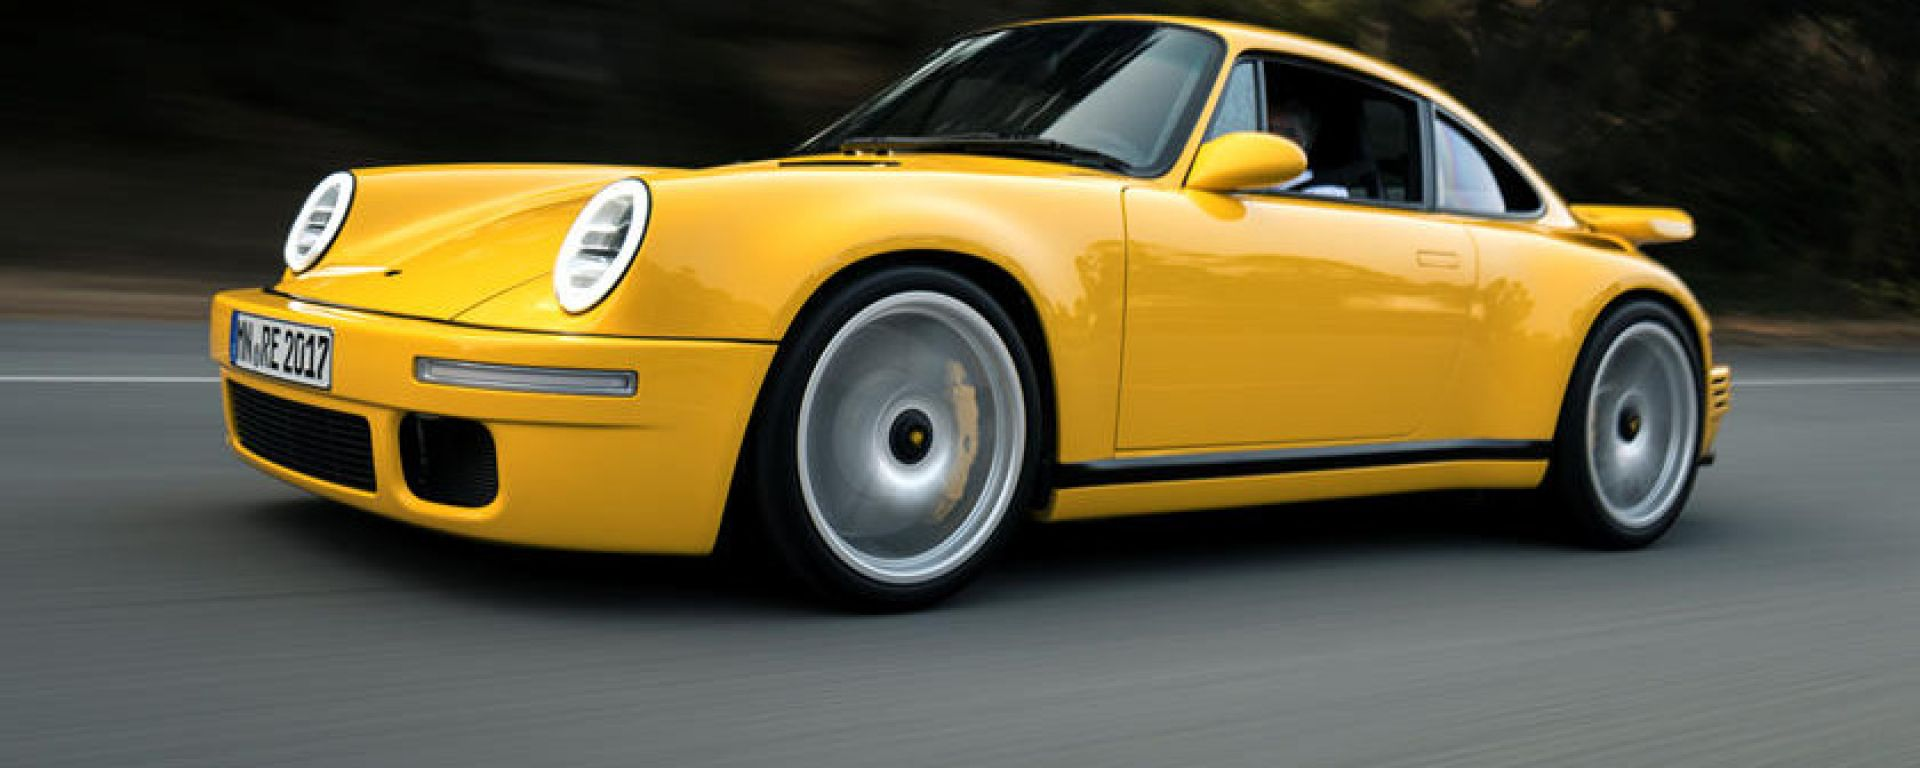 La RUF Yellowbird del 2017